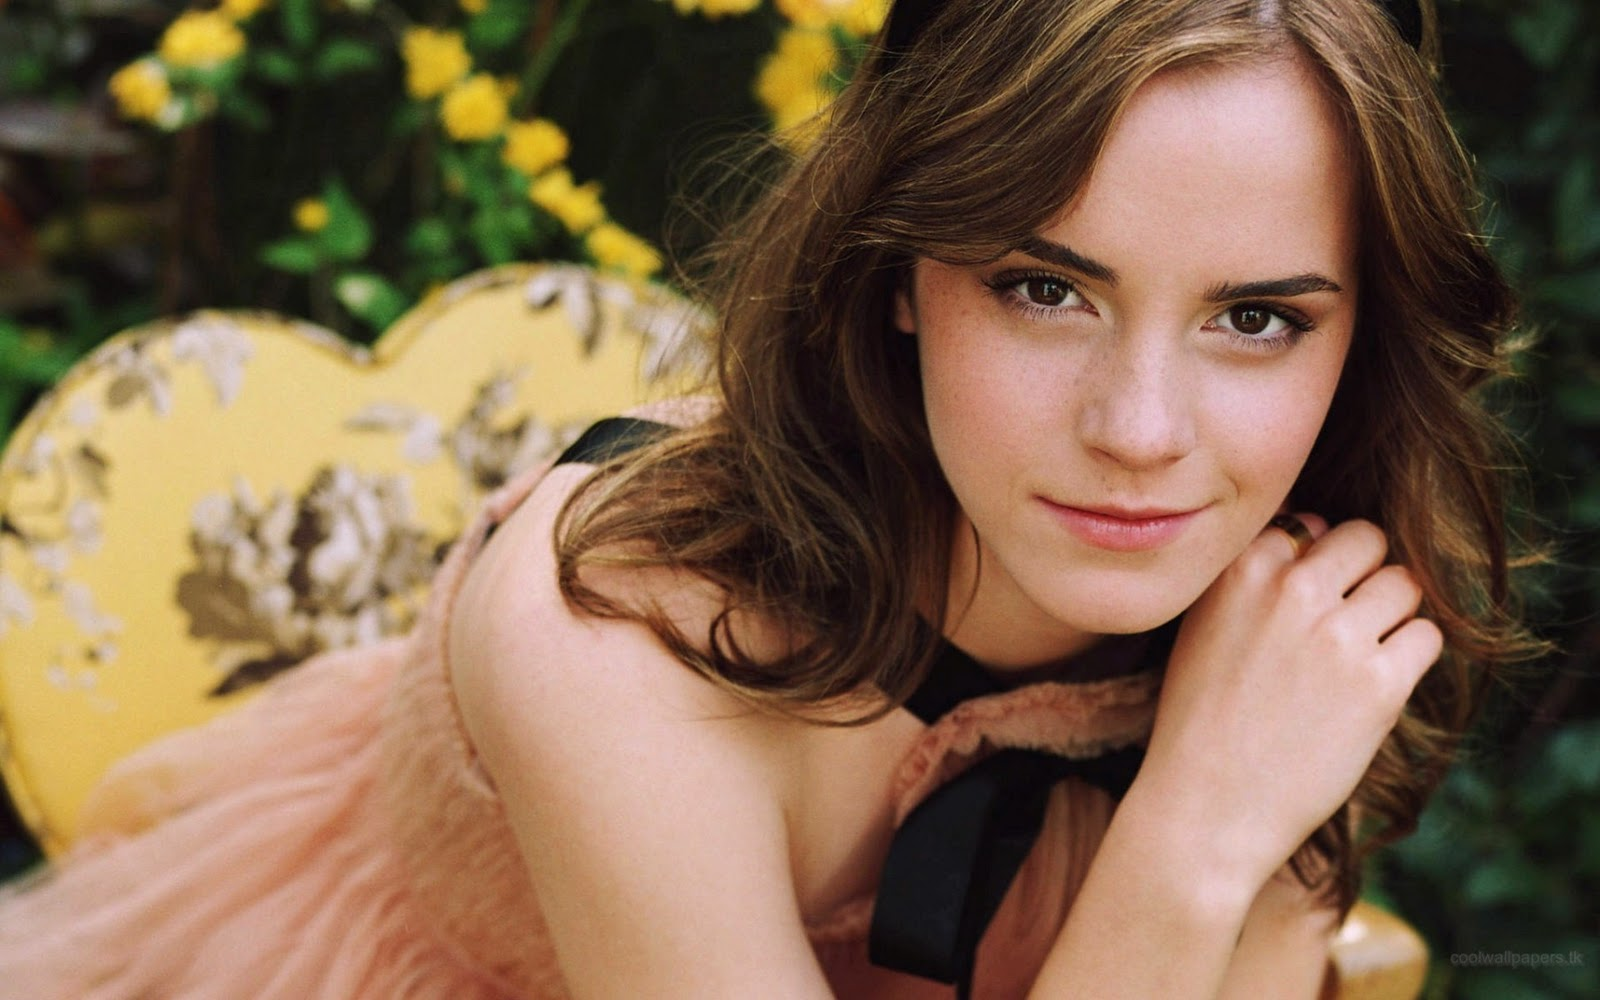 emma watson hd hot - photo #3